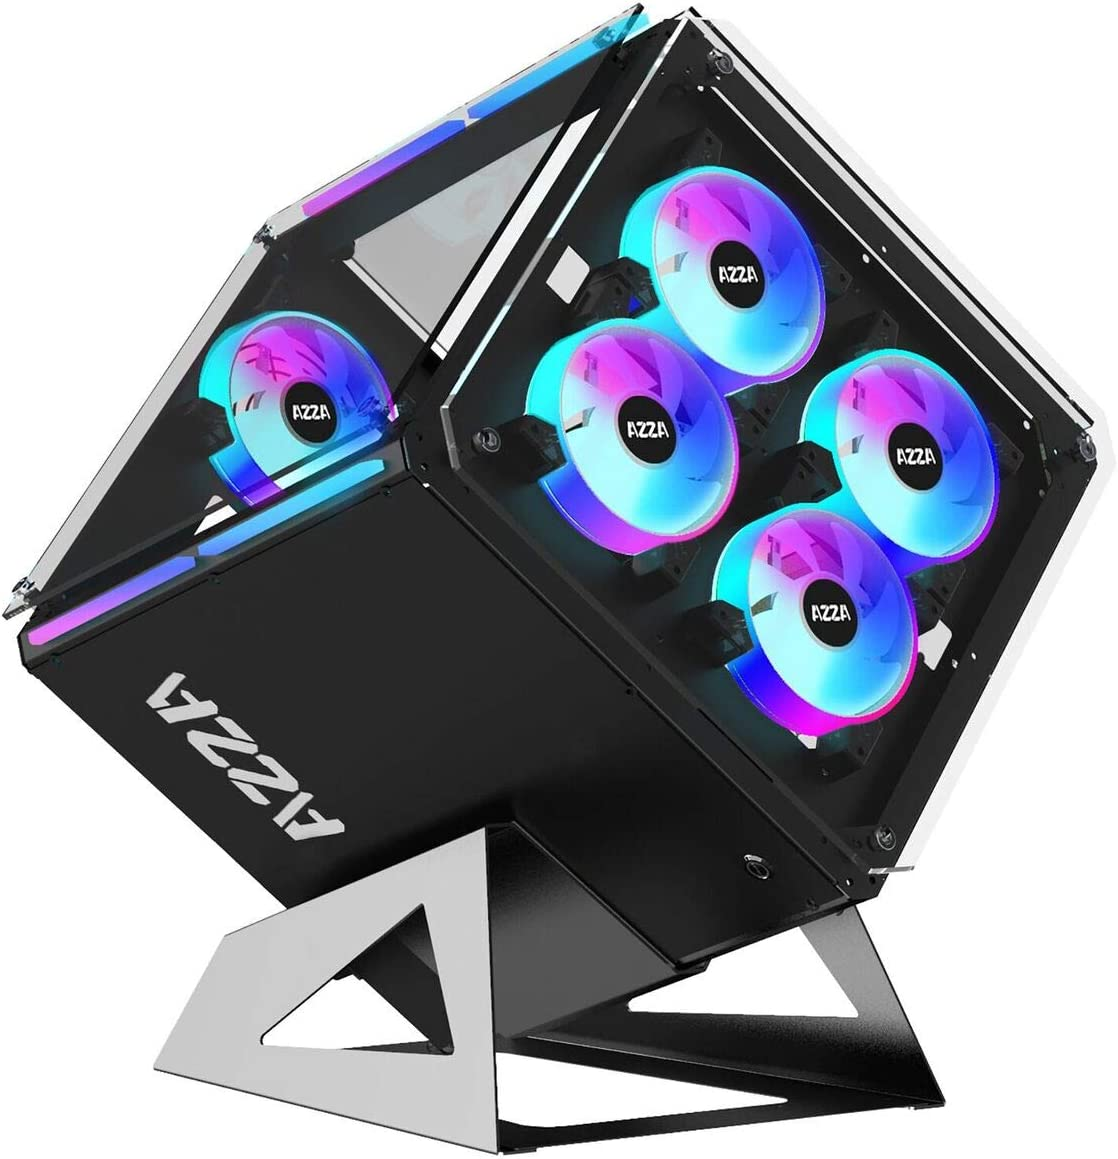 AZZA CSAZ-802F Cube CASE w/DRGB Lighting and Tempered Glass,black